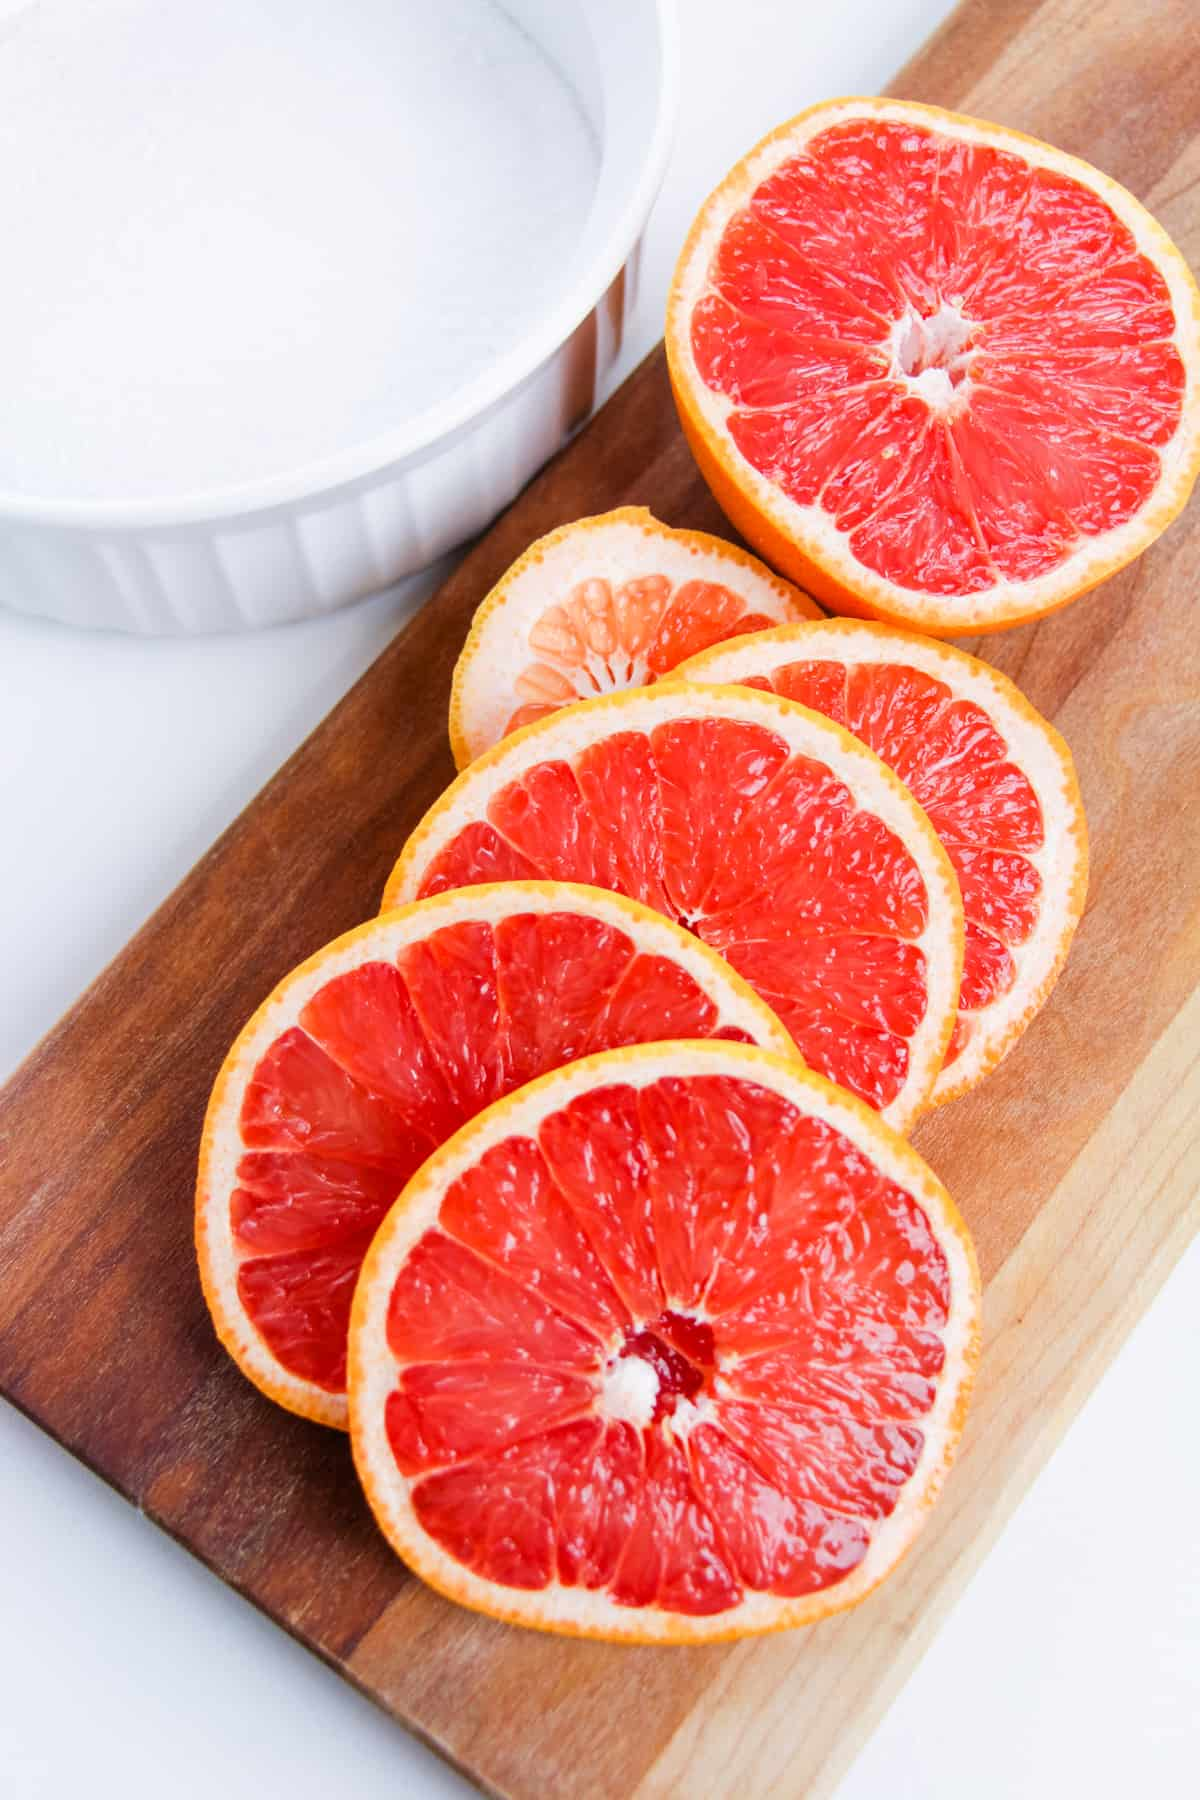 Sliced red grapefruit on wood cutting board with bowl of coarse salt next to it